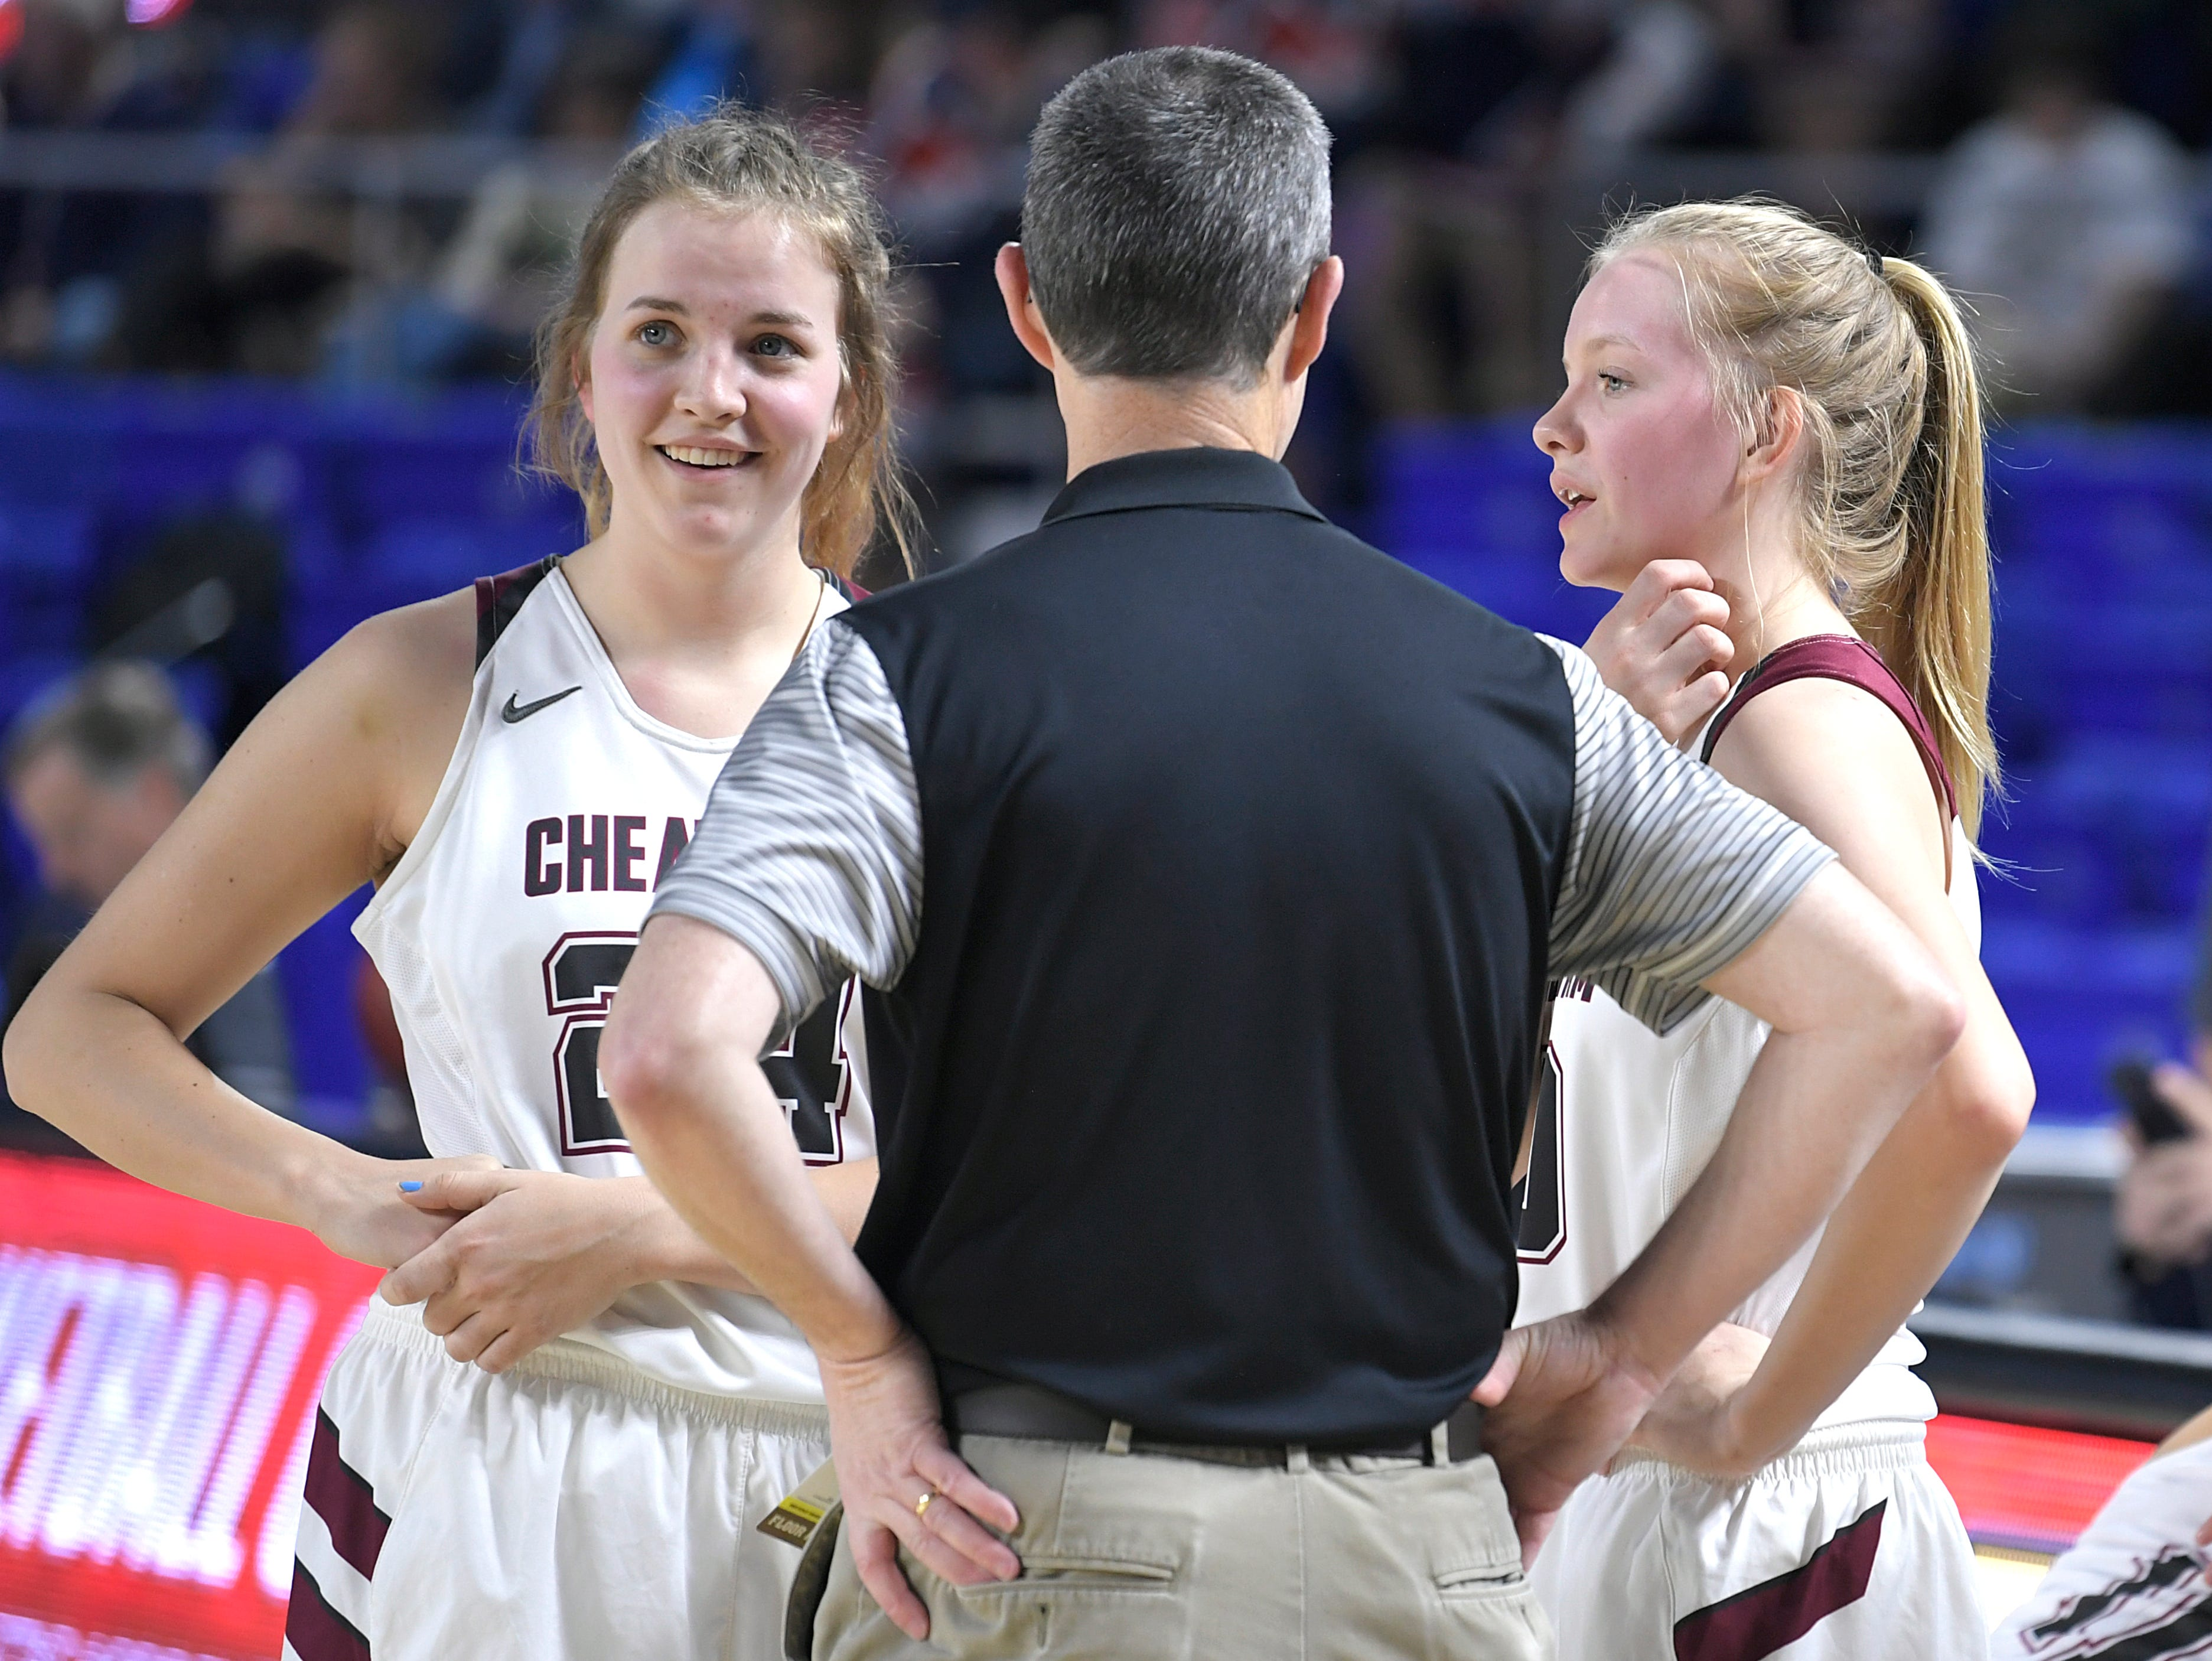 Cheatham County's Alli Douglas (24) and Abbi Douglas (10) talk with head coach Jim Gibbs during half time during the quarter final game at the  TSSAA BlueCross Class AA girls basketball championship at MTSU's Murphy Center in Murfreesboro on Wednesday, March 6, 2019.